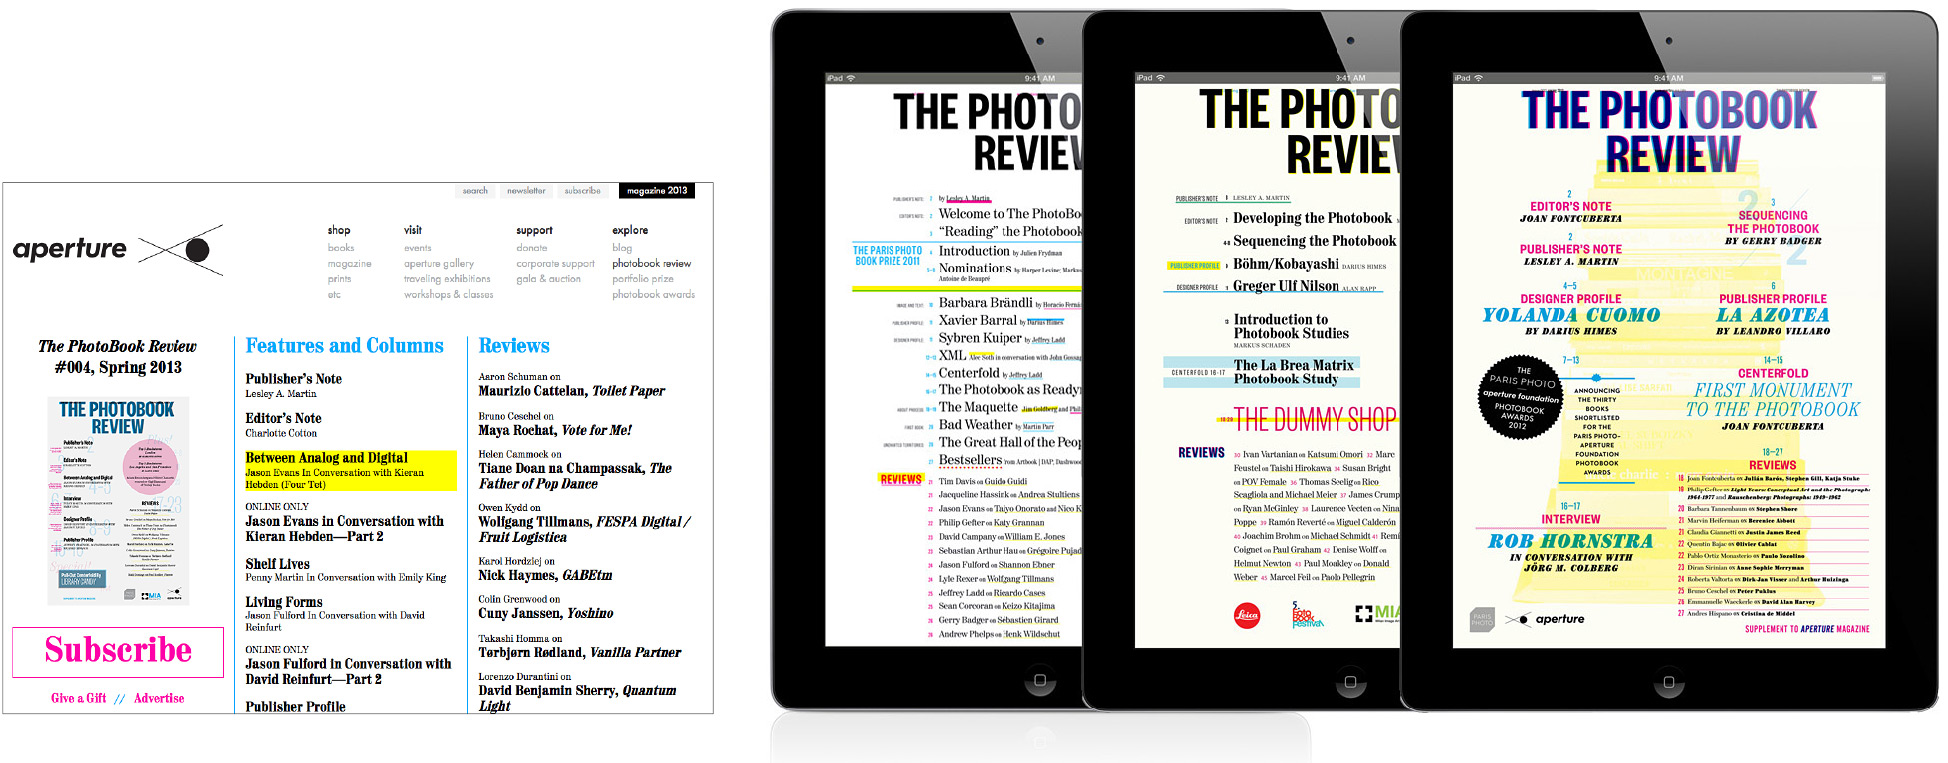 Responsive website and digital editions